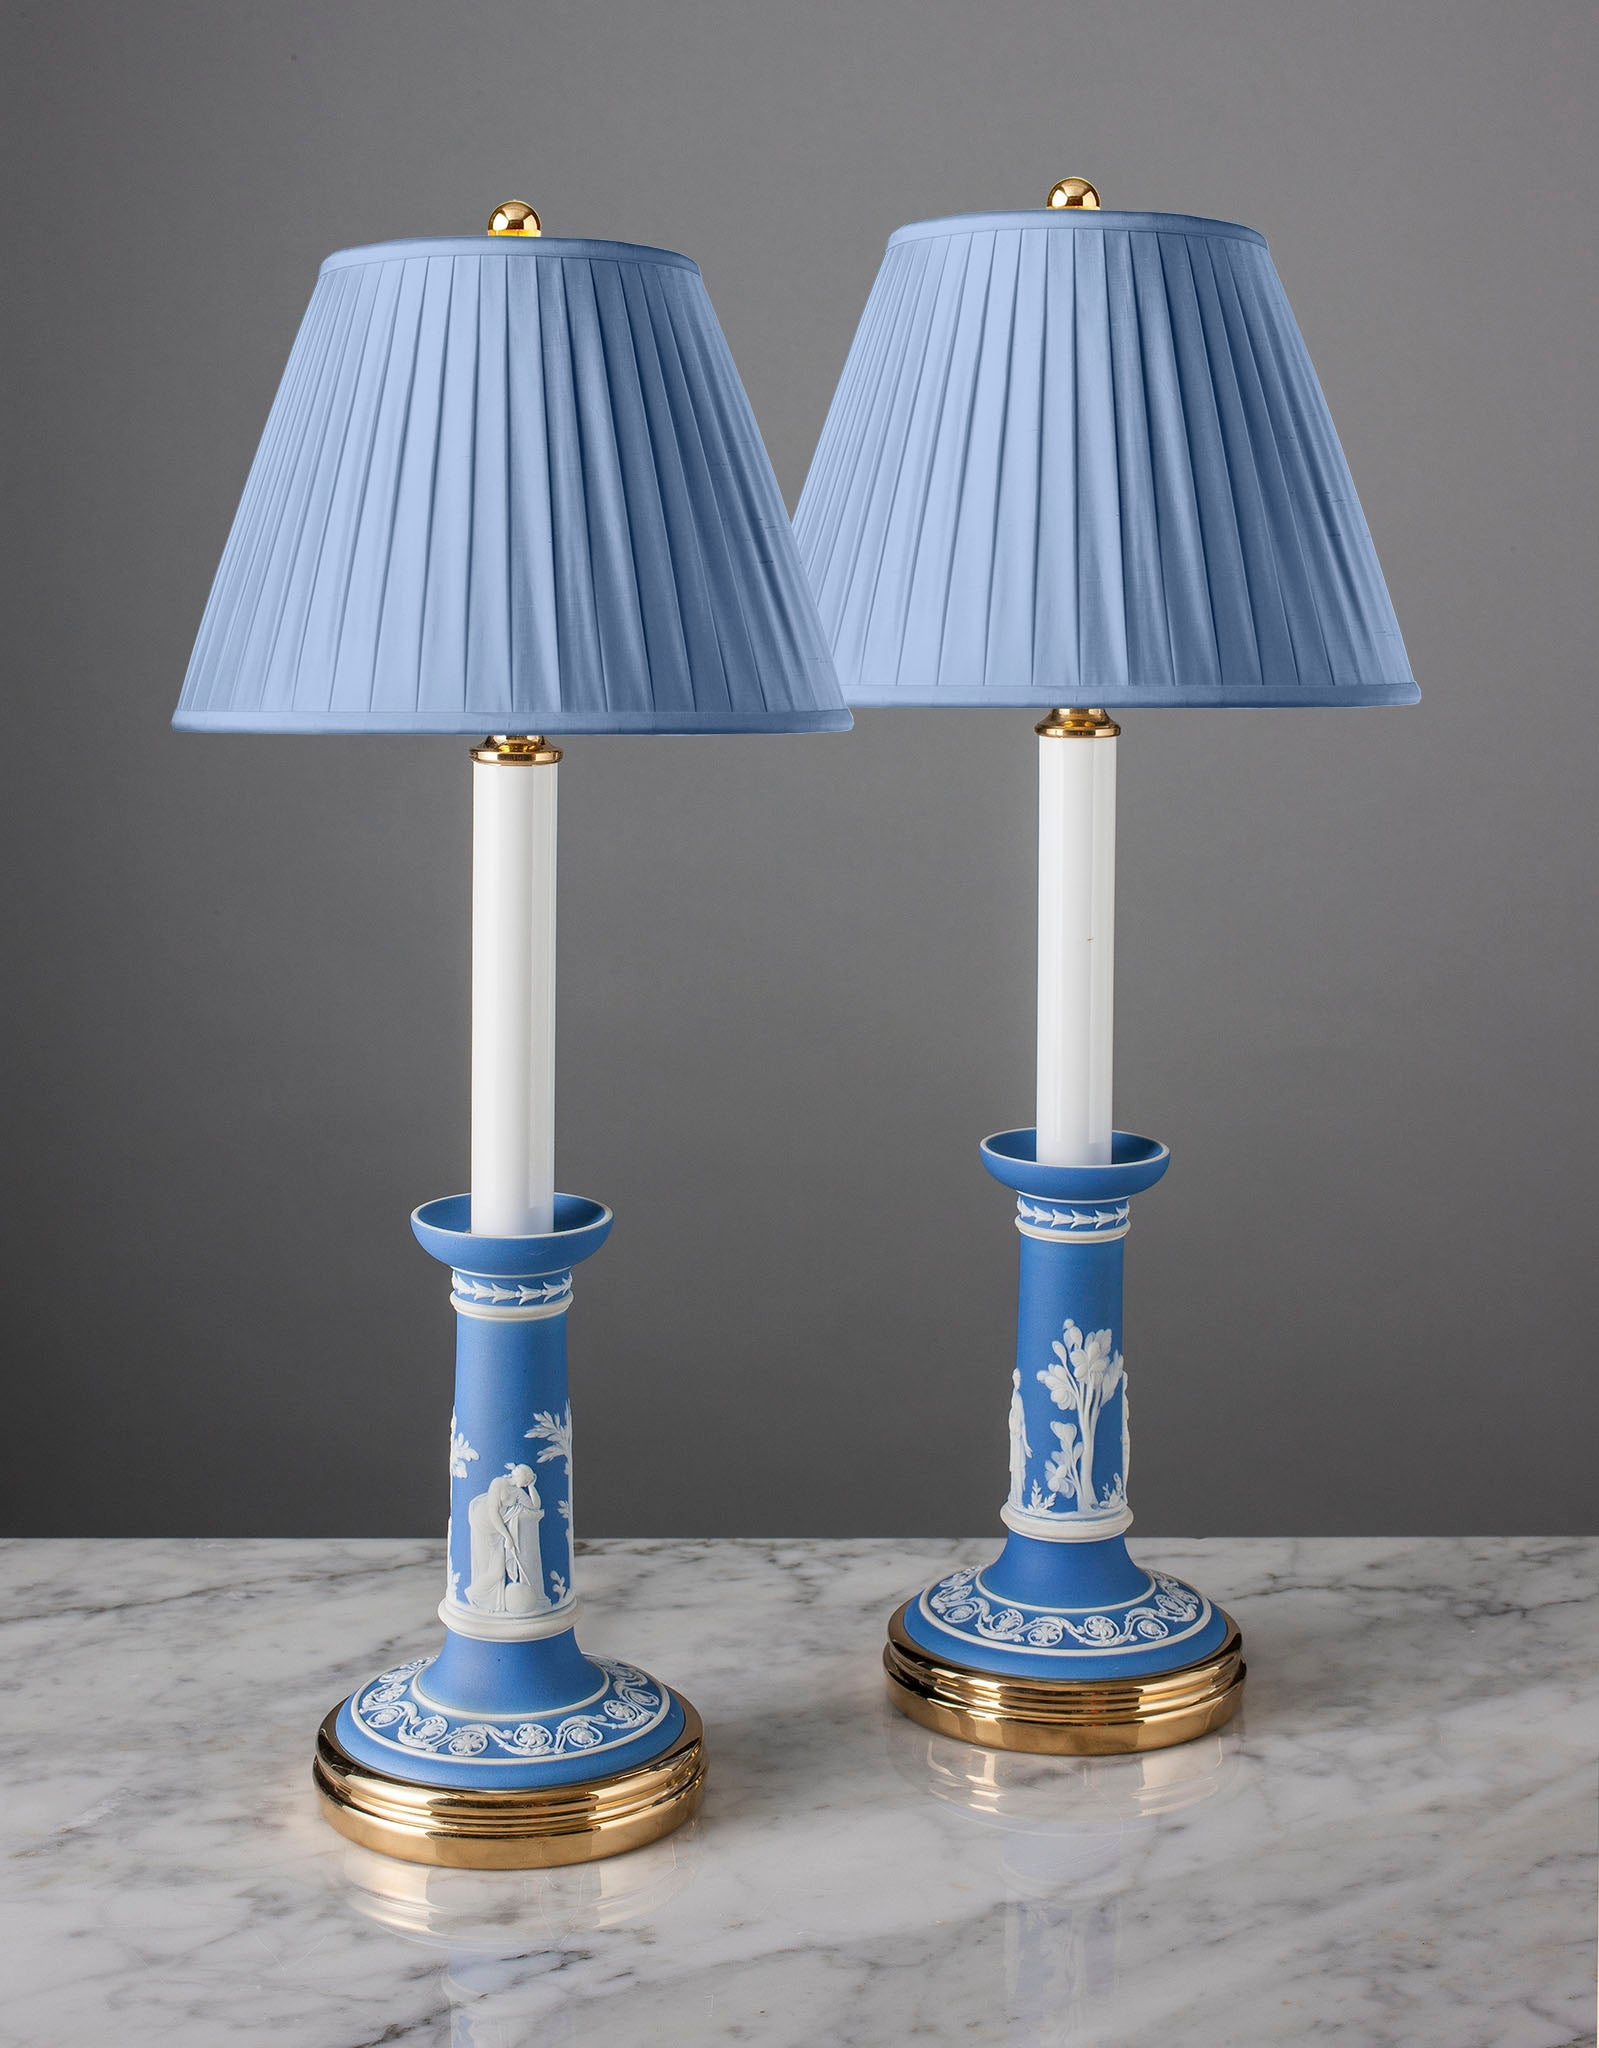 E081  A Fine Pair Of 19th Century Wedgwood Blue Jasper Candlestick Lamps - Circa 1870